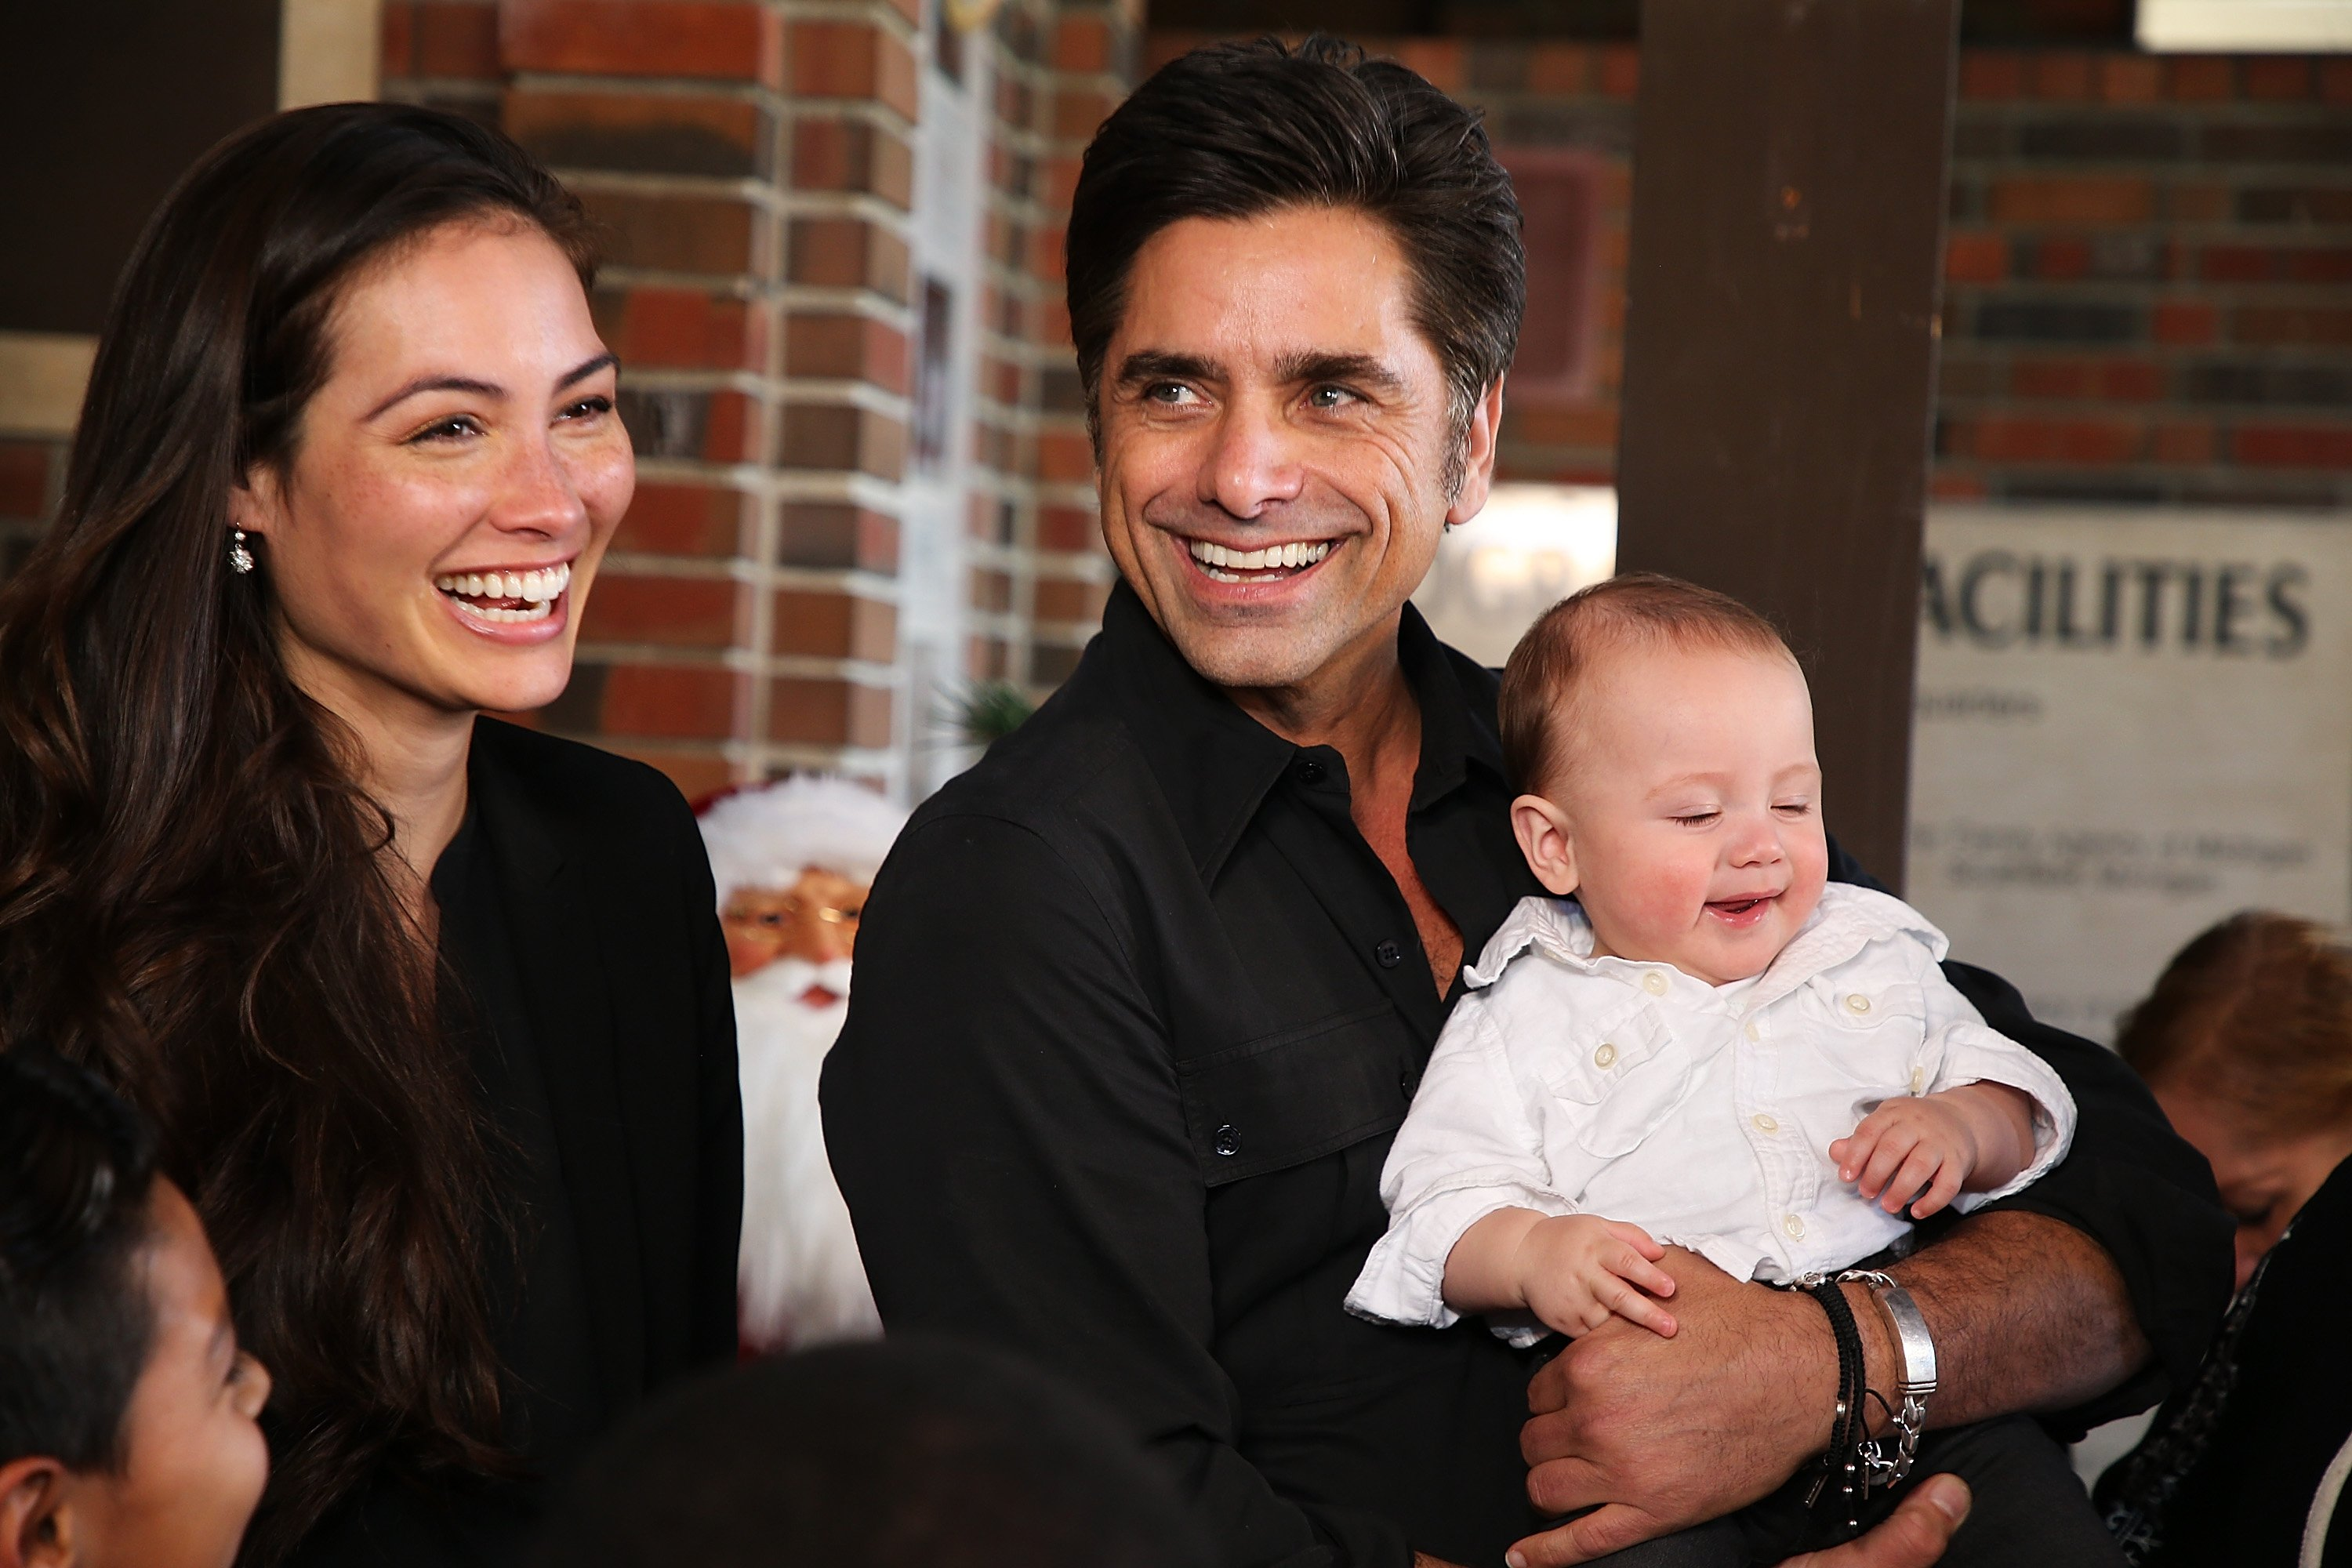 John Stamos with his wife Caitlin McHugh and their son, Billy Stamos attend a special event on November 27, 2018 in Beaumont, California | Photo: Getty Images